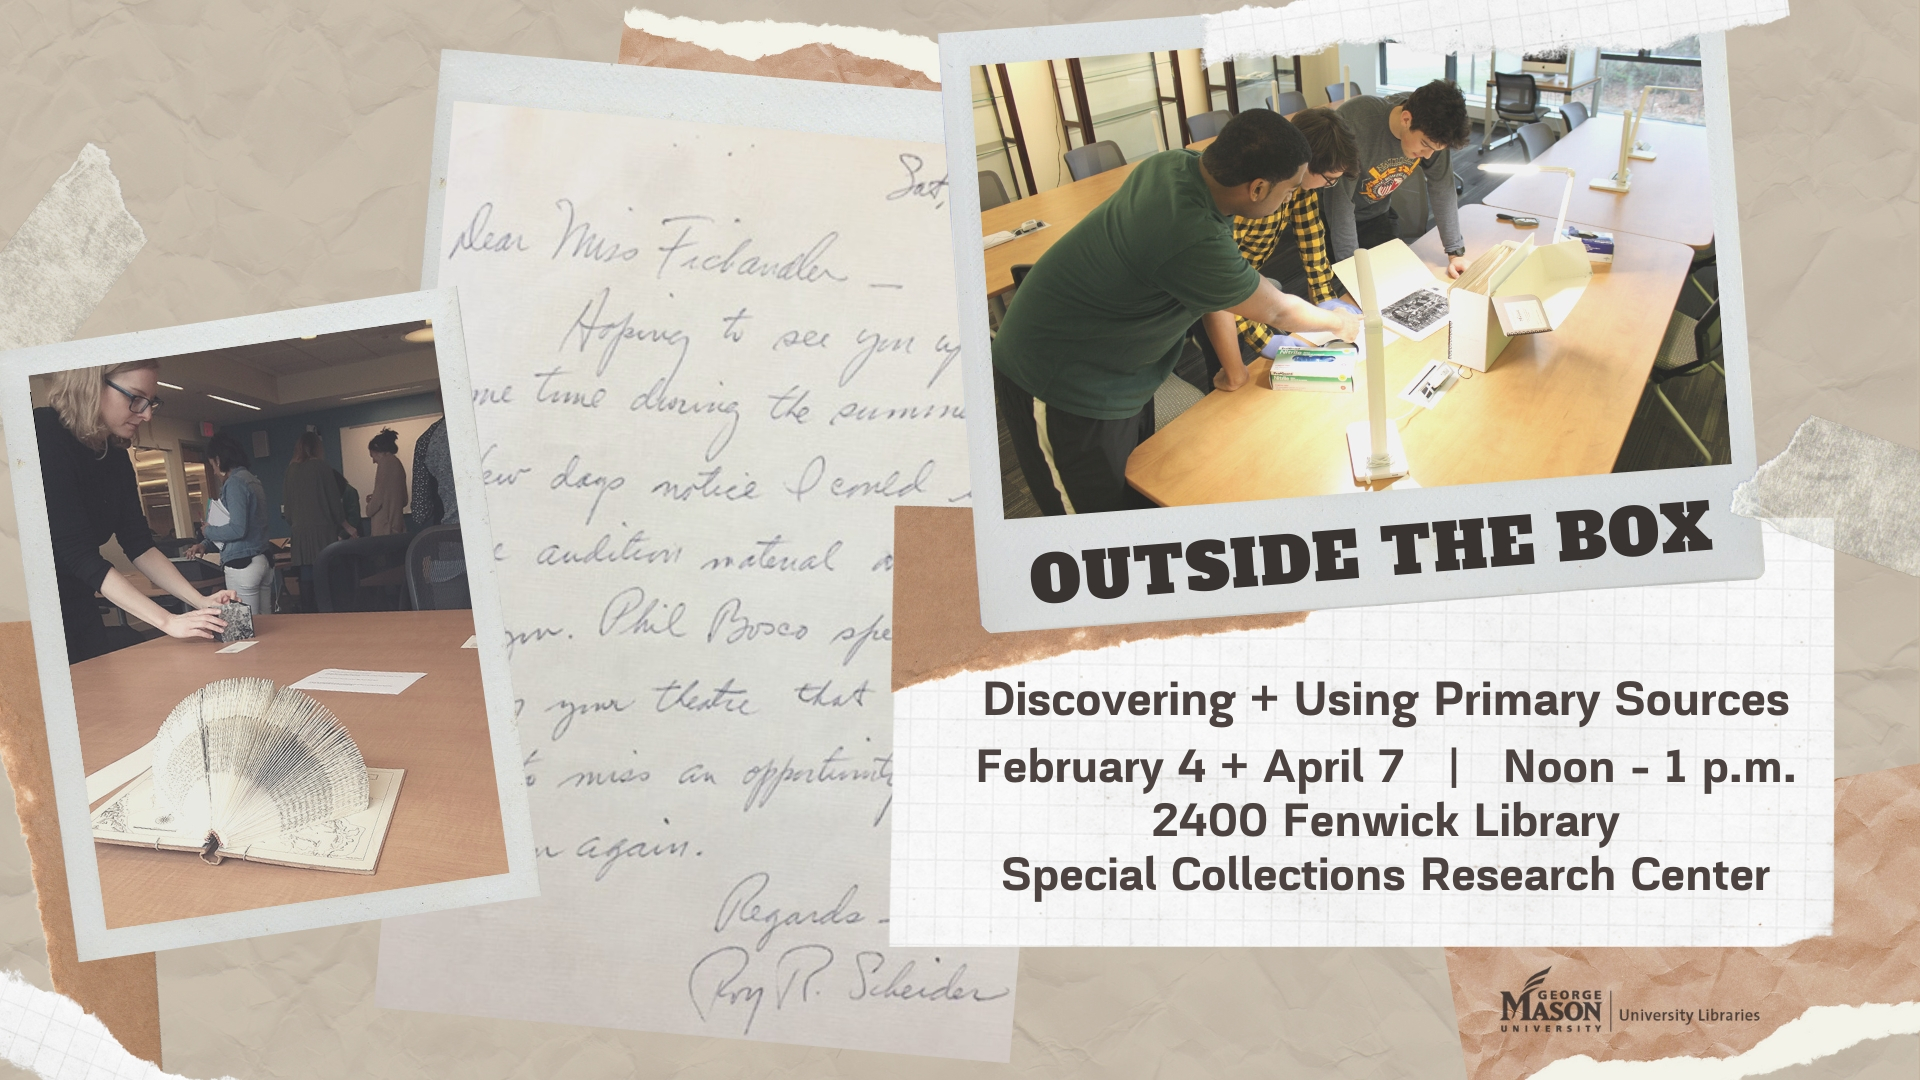 Outside the Box! Discovering + Using Primary Sources